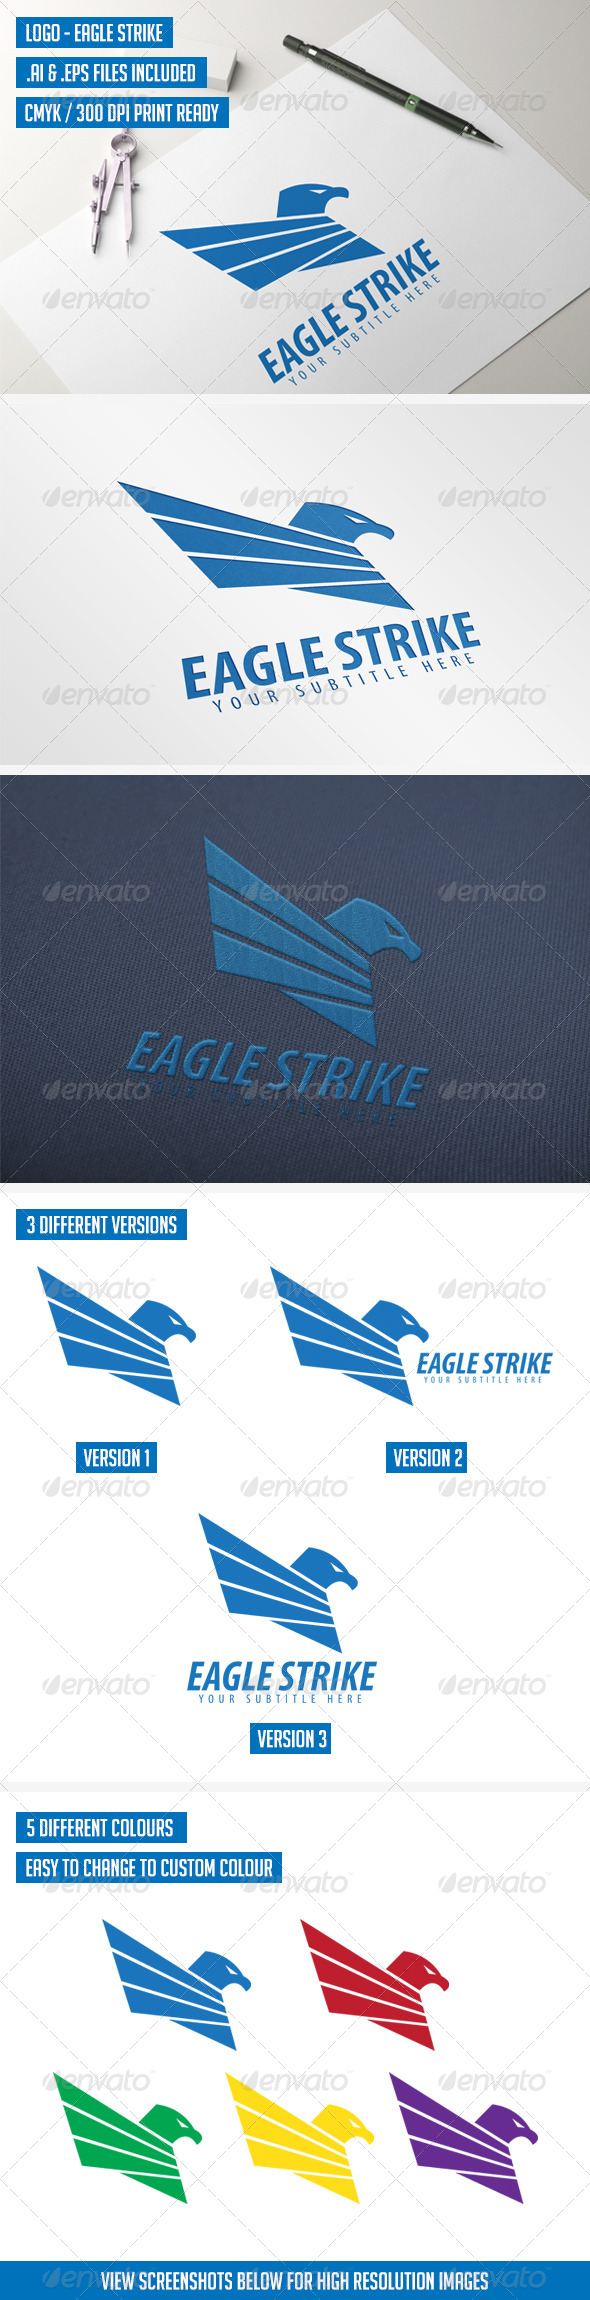 Logo Template - Eagle Strike - Animals Logo Templates